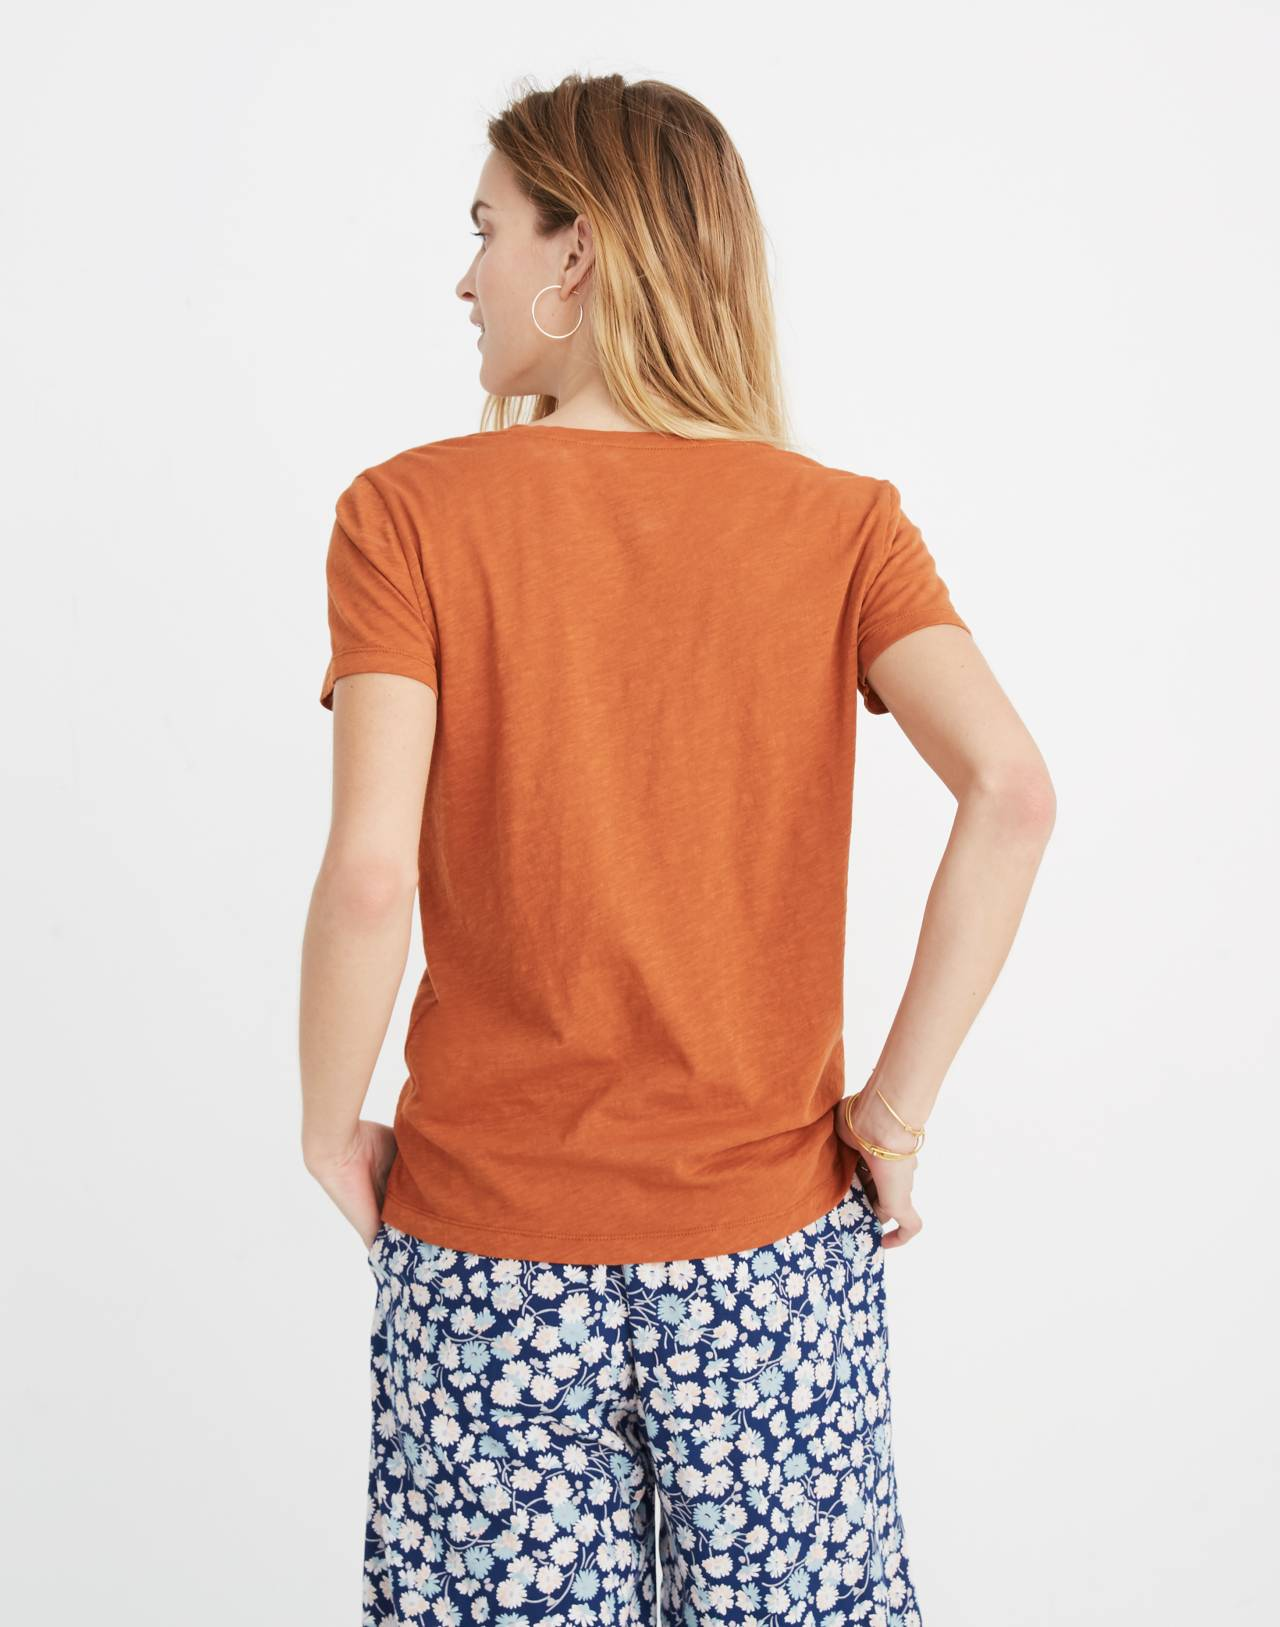 Whisper Cotton V-Neck Pocket Tee in burnt clay image 3